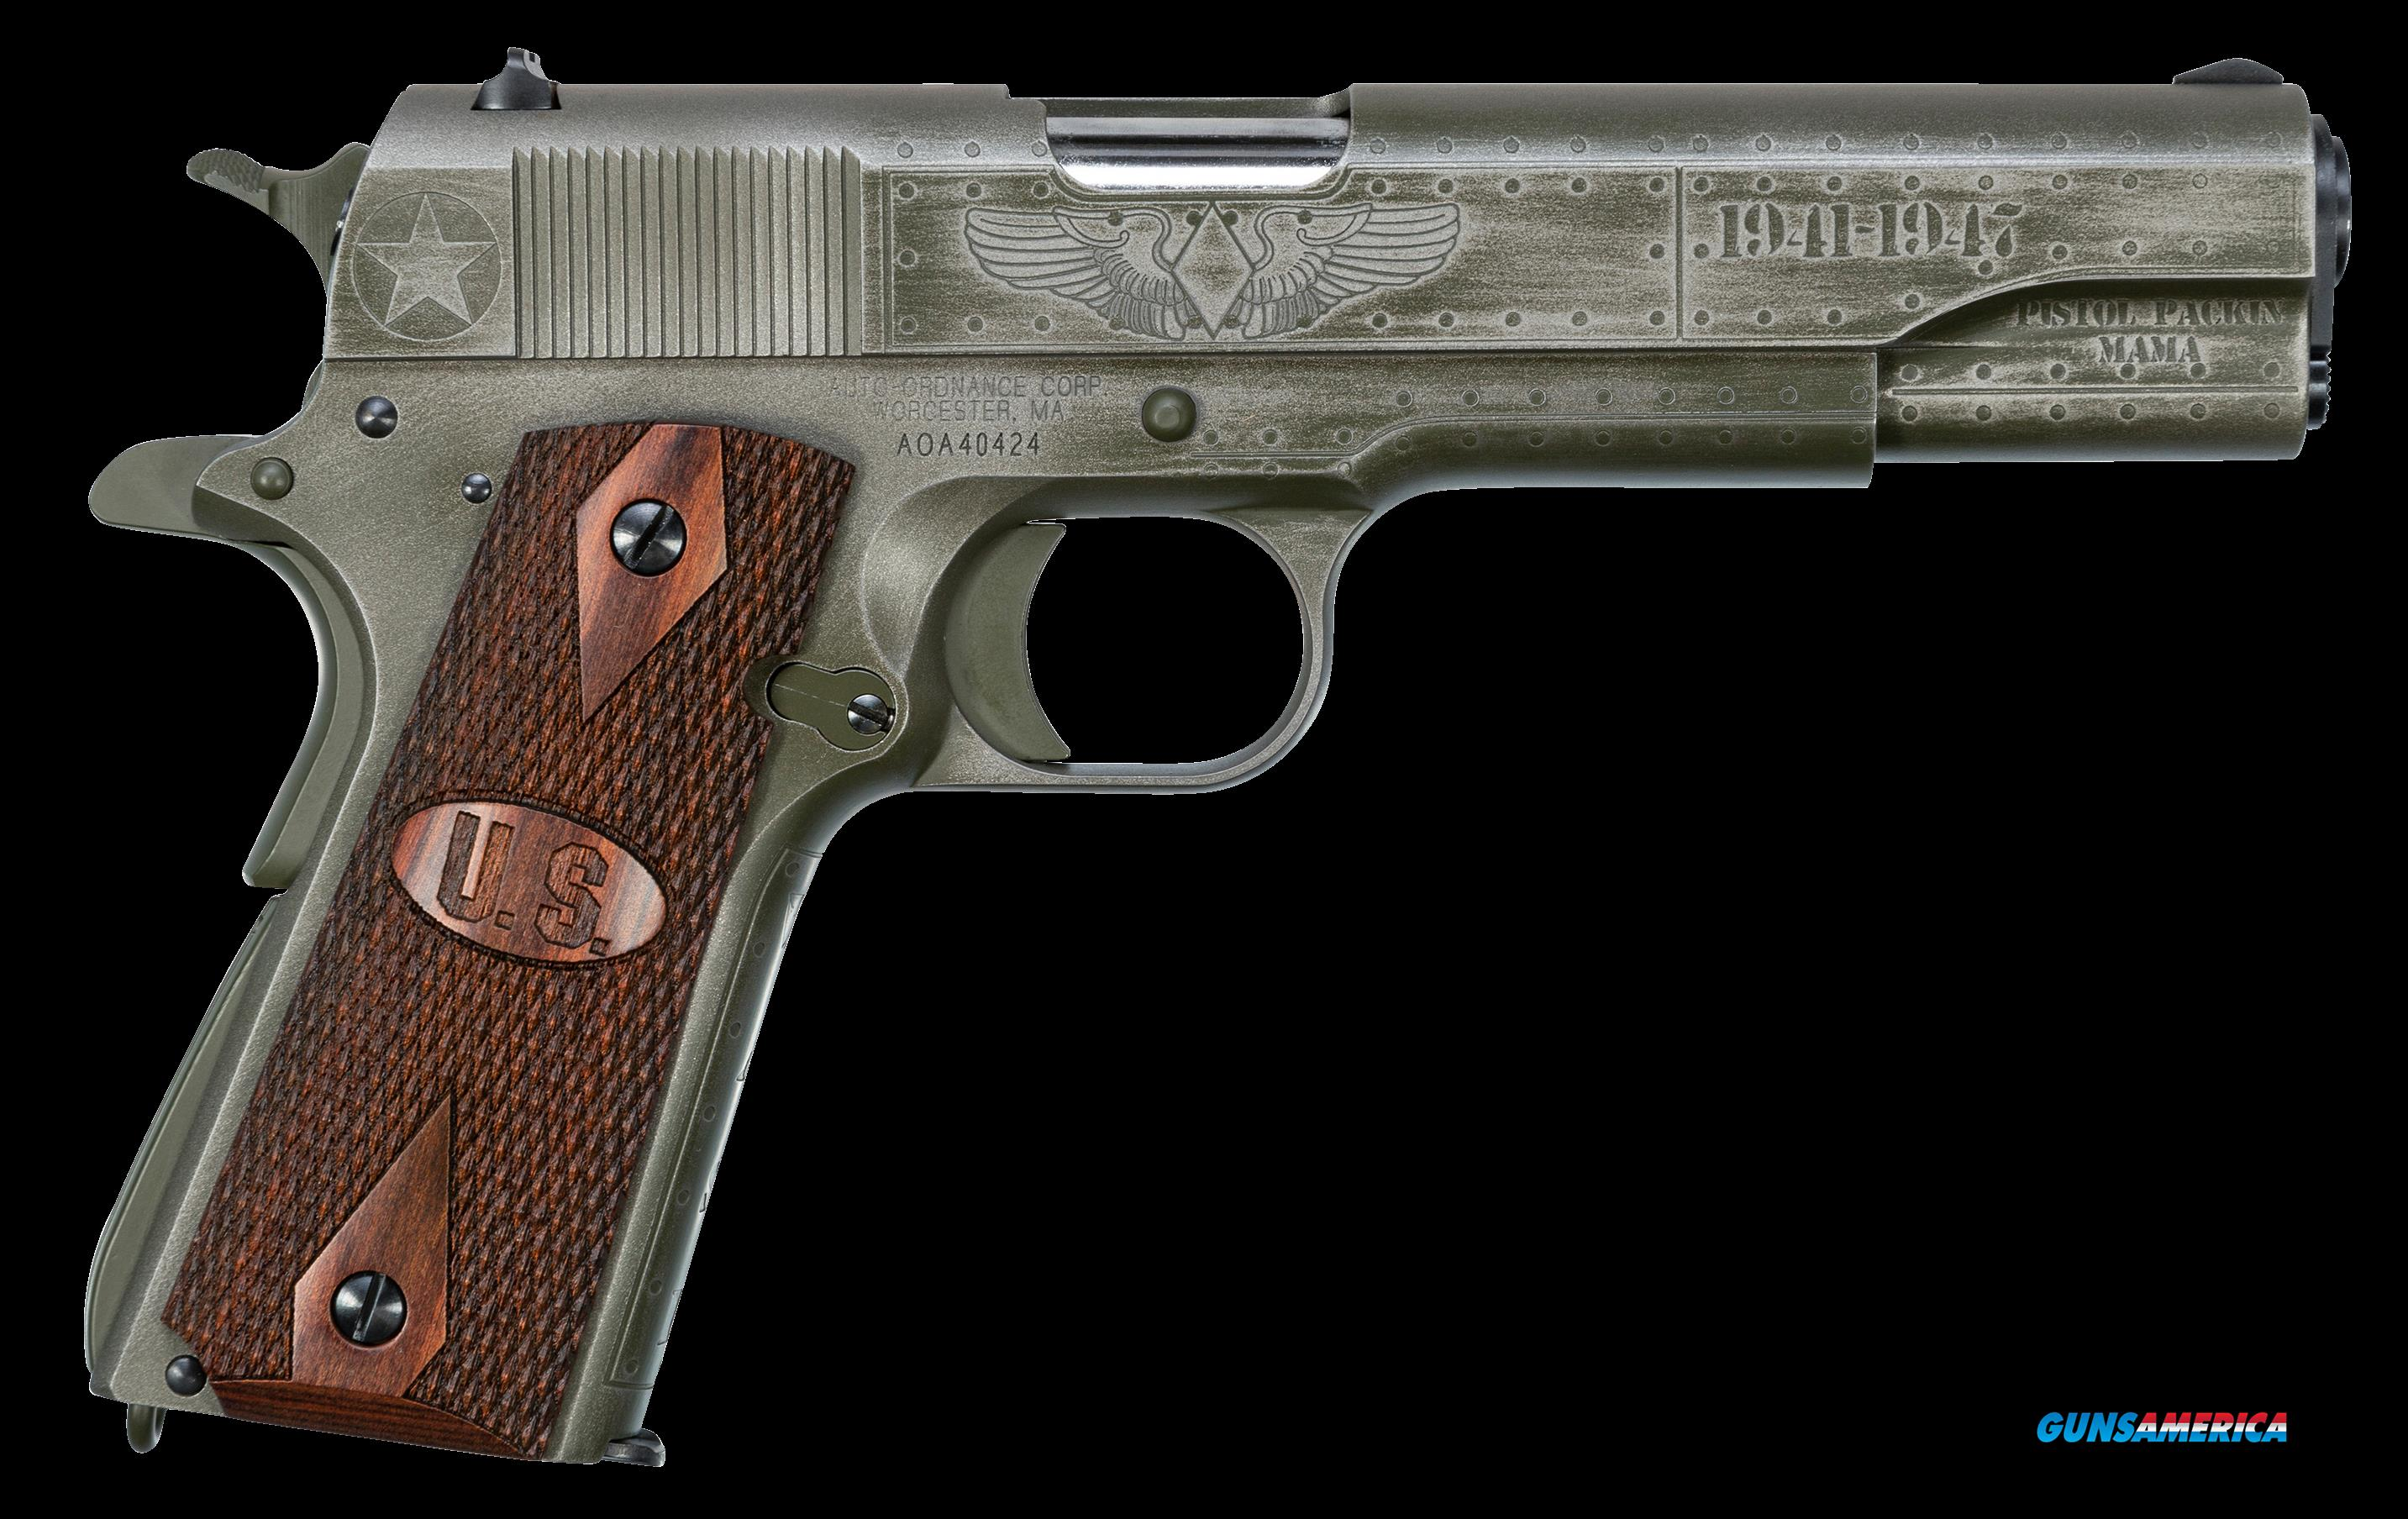 Kahr Arms 1911, Auto 1911bkowc2 Fly Girls     1911 45acp 5in 7rd  Guns > Pistols > 1911 Pistol Copies (non-Colt)